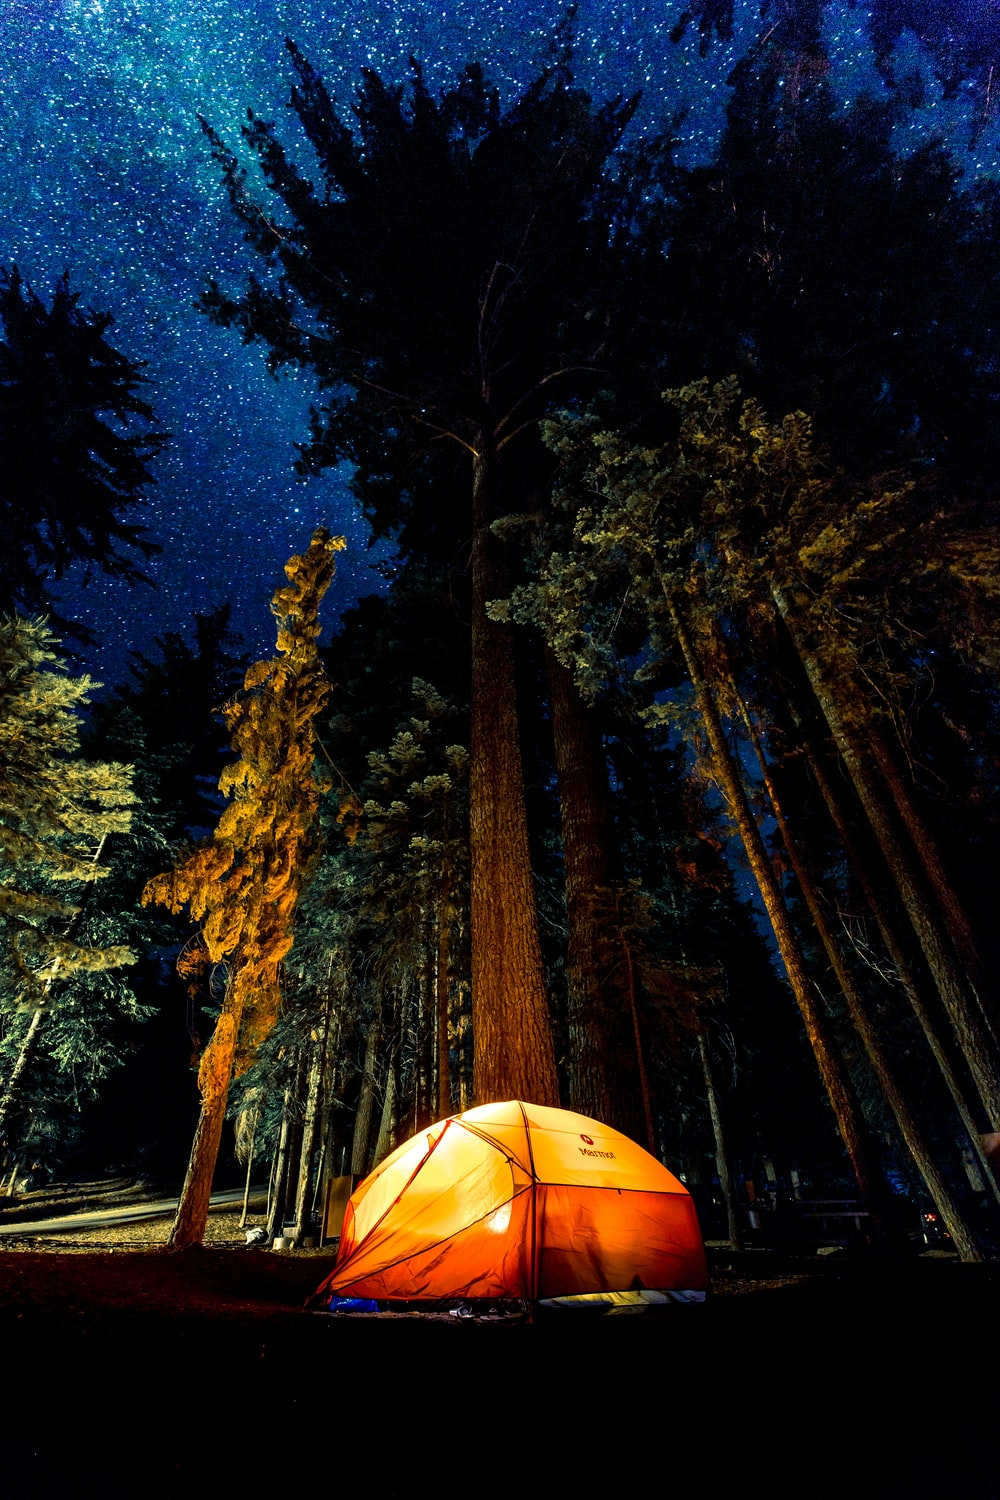 camping in forest during nightime